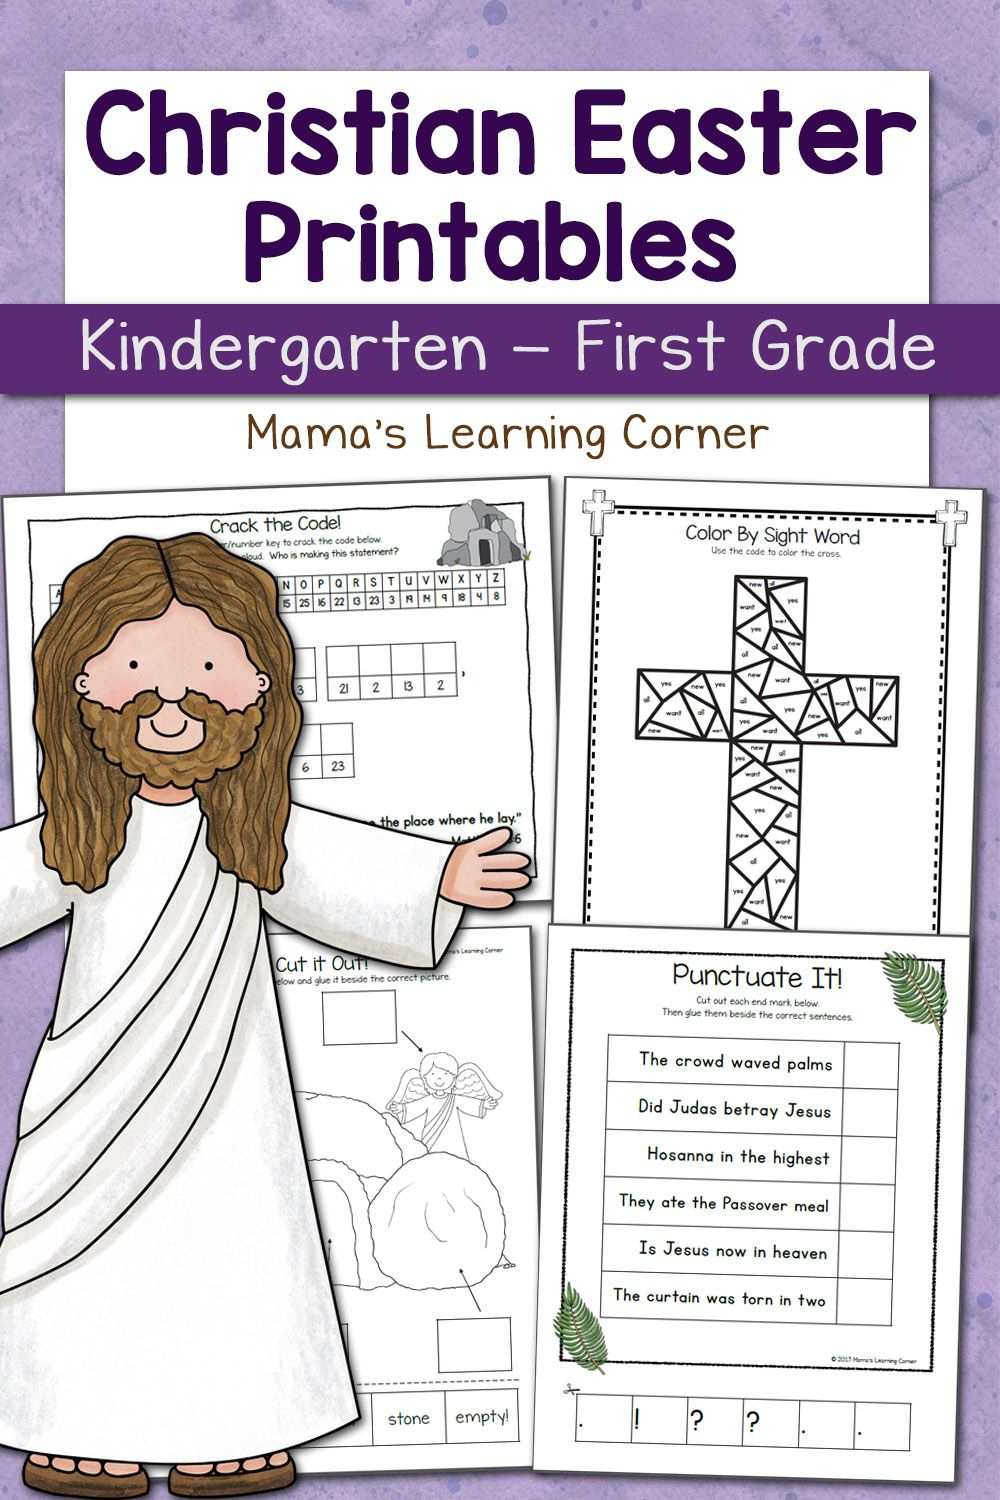 Christian Easter Worksheets For Kindergarten And First Grade | Kid | Stations Of The Cross Printable Worksheets